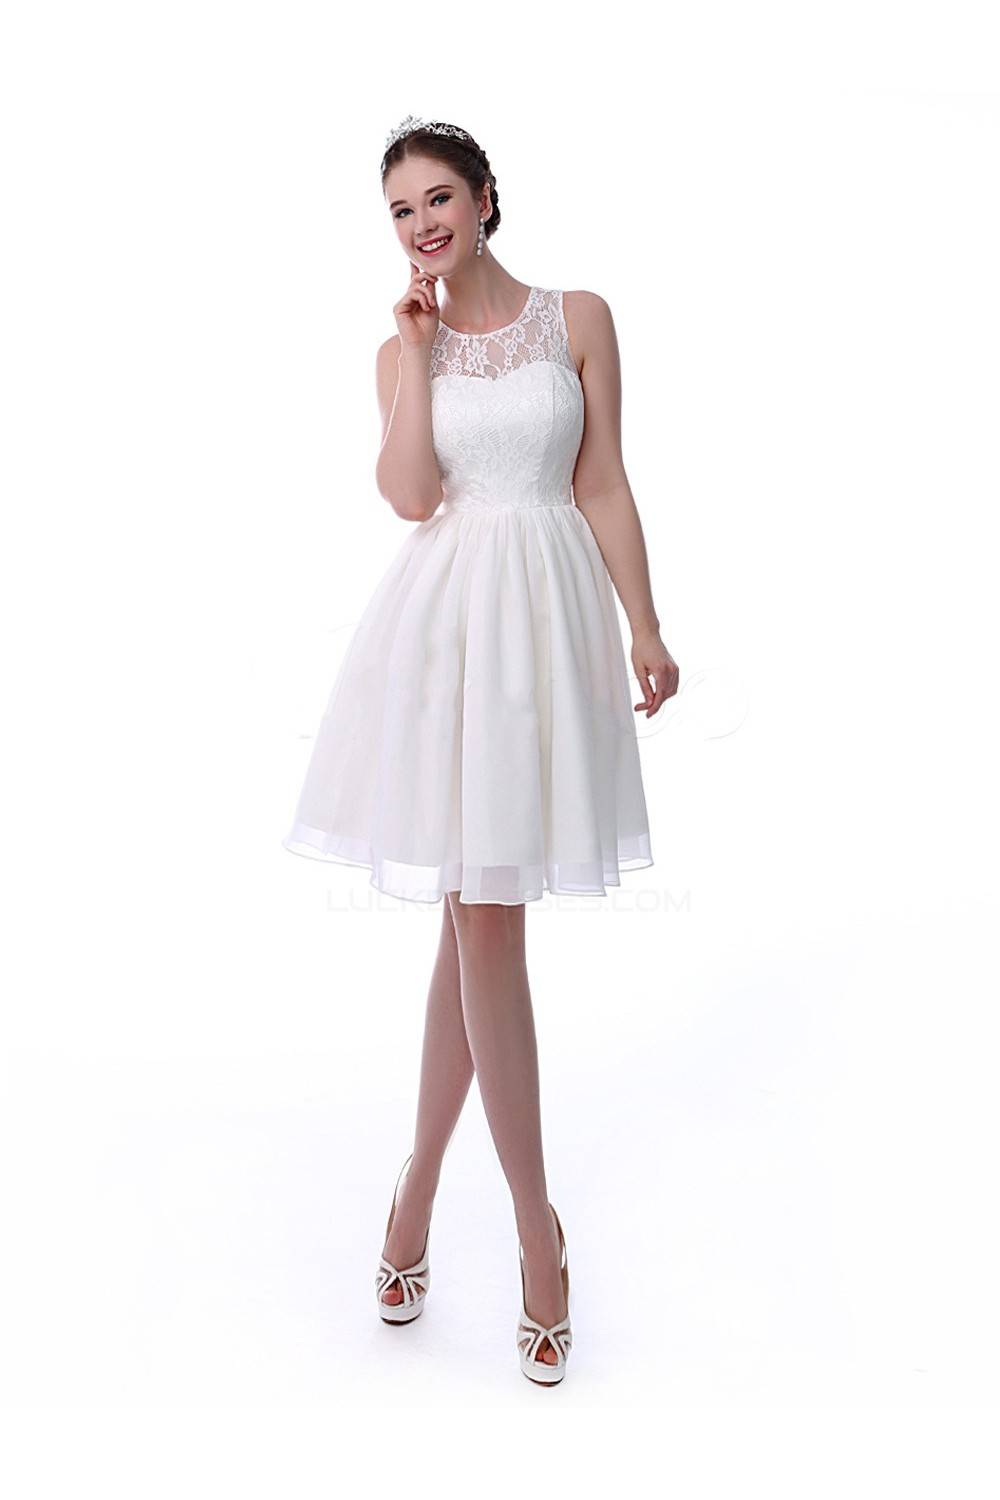 ALine Short White Lace and Chiffon Prom Evening Formal